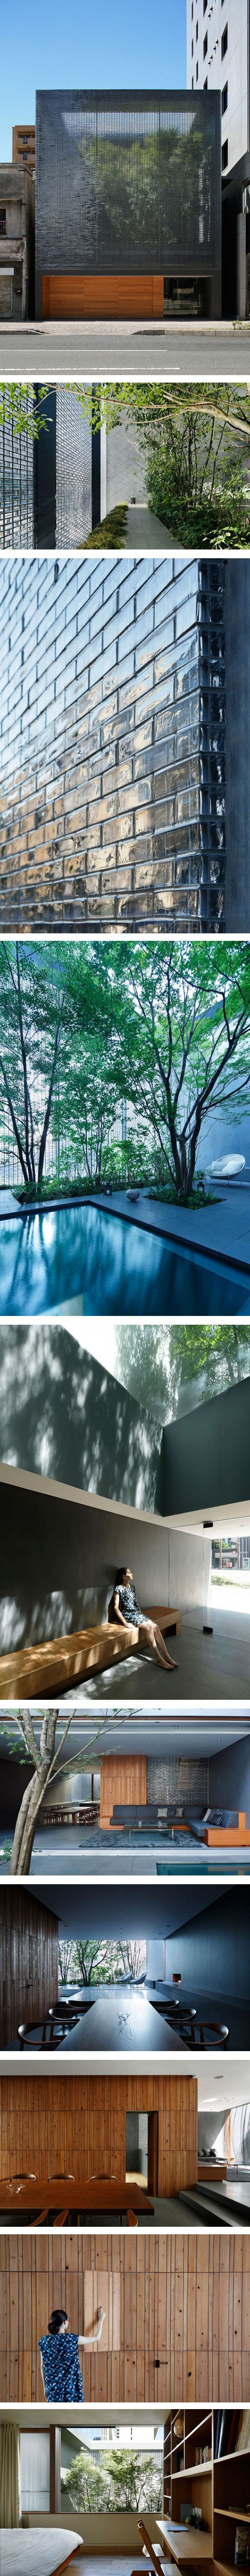 Stunning Glass House in Hiroshima - great combination of glass bricks and wood panelling.